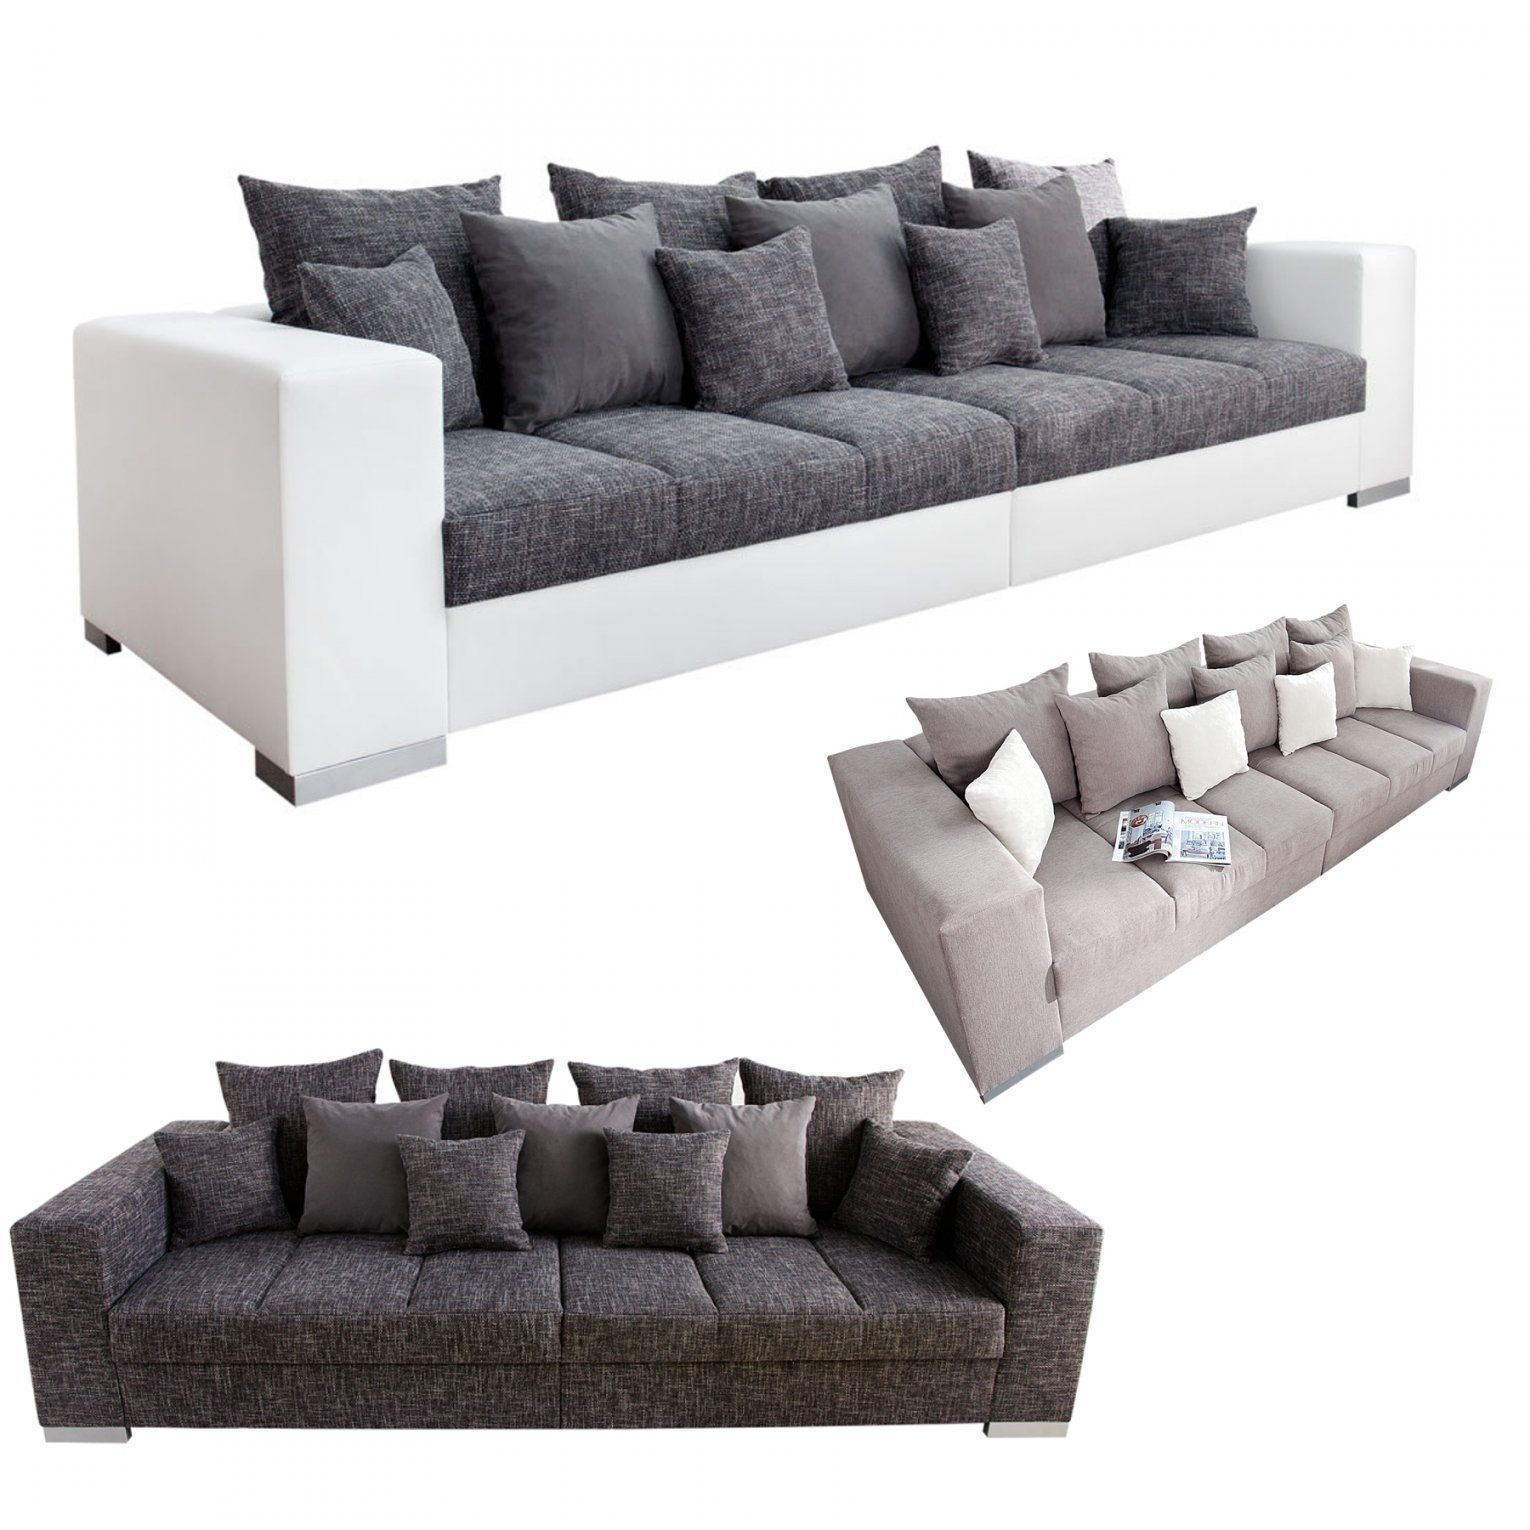 Big Sofa Poco Von Big Sofa Poco Domane Bild Gunstige Sofas Big